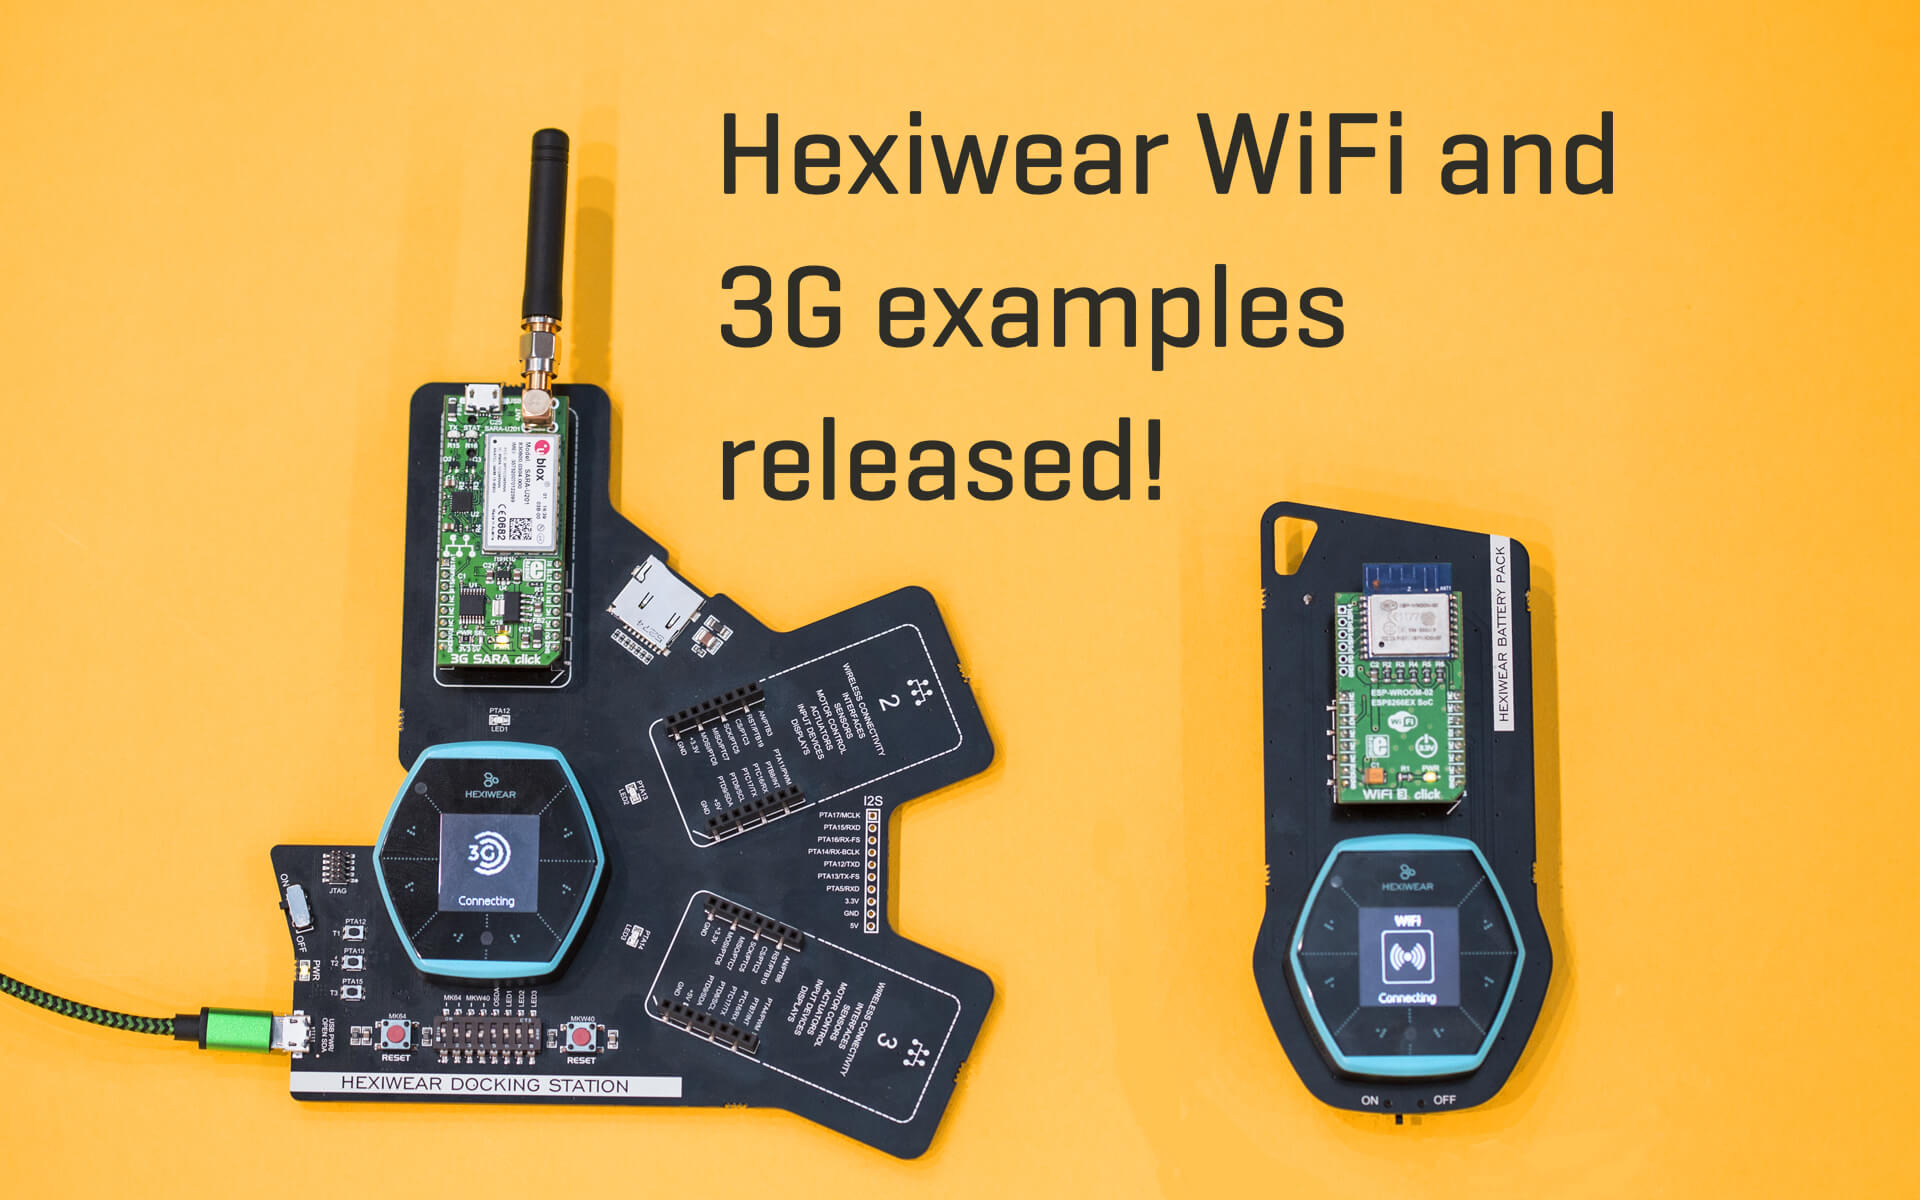 Hexiwear WiFi and 3G examples released